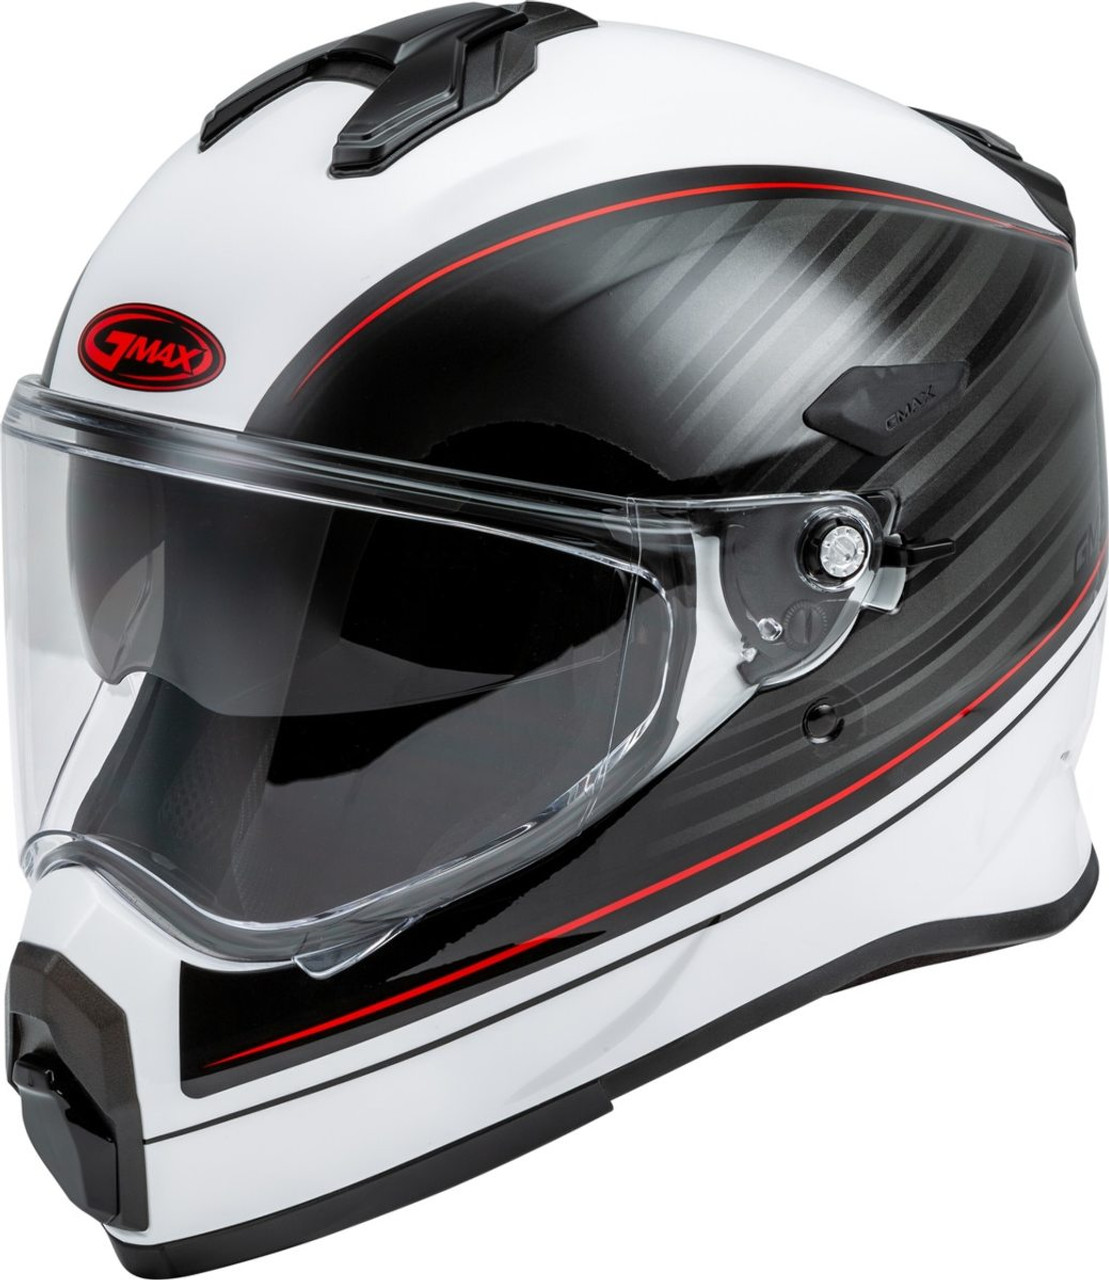 AT-21 Adventure Raley Helmet